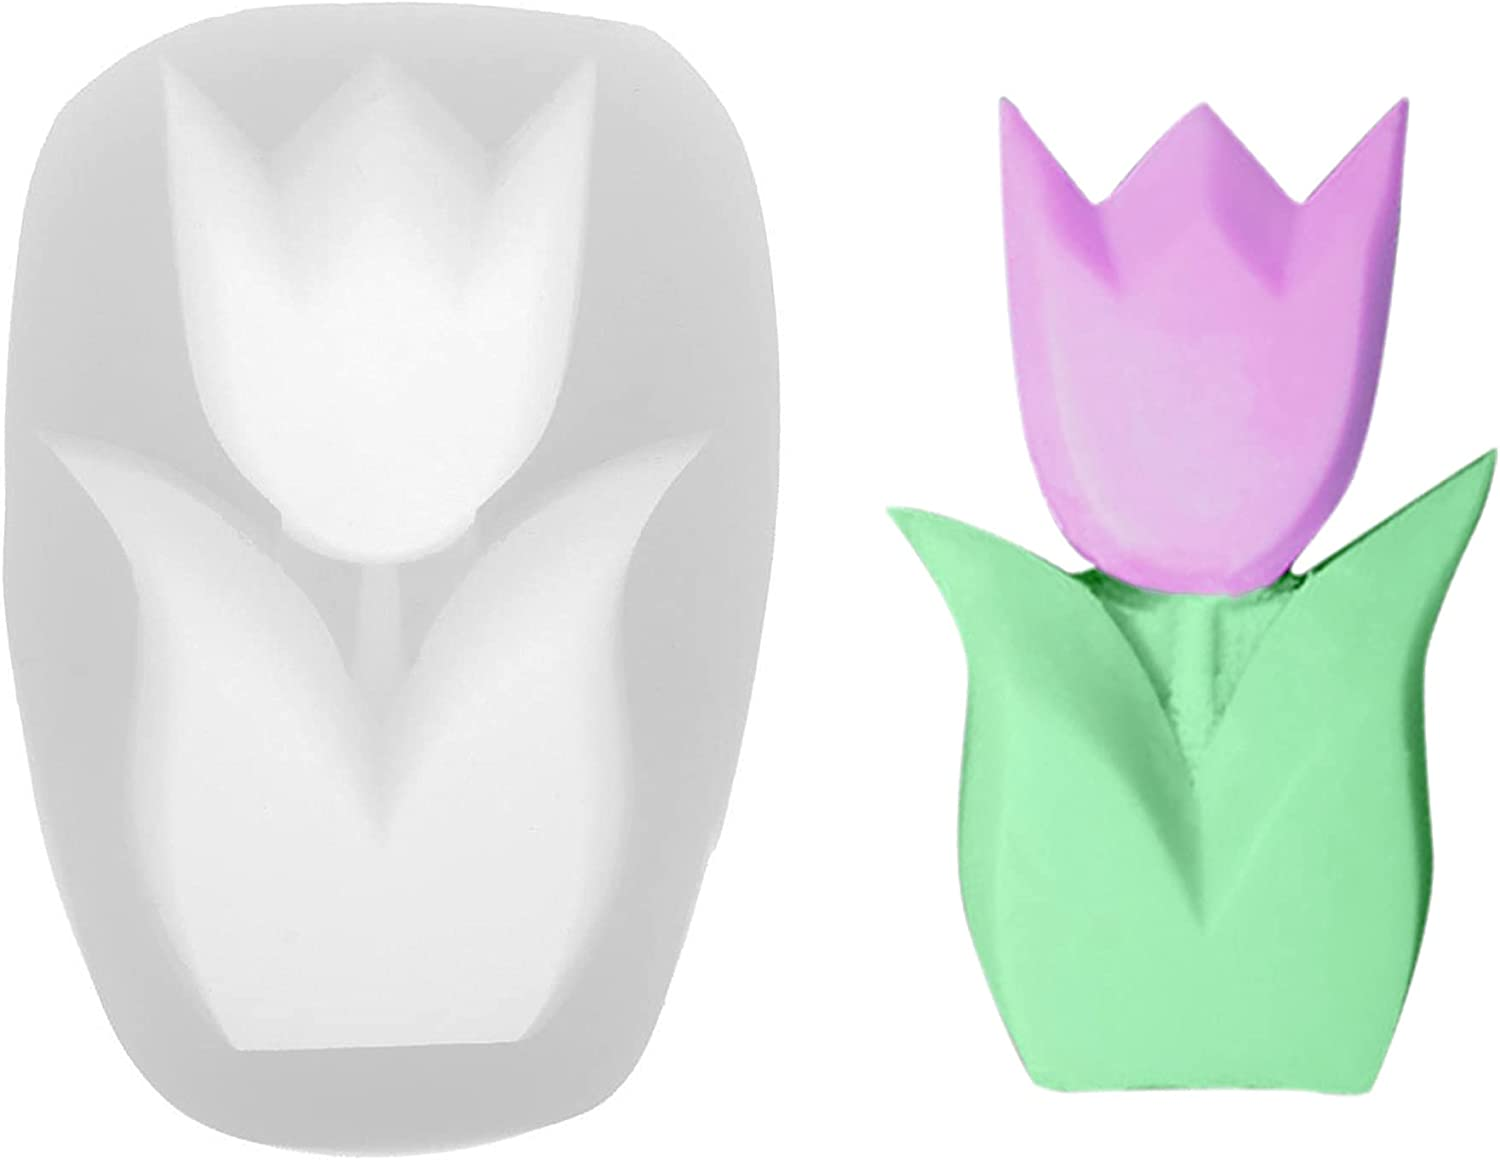 Max 89% OFF ONNPNN Geometry Flower Silicone Minneapolis Mall Mold 3D Candles Abstract Tulip